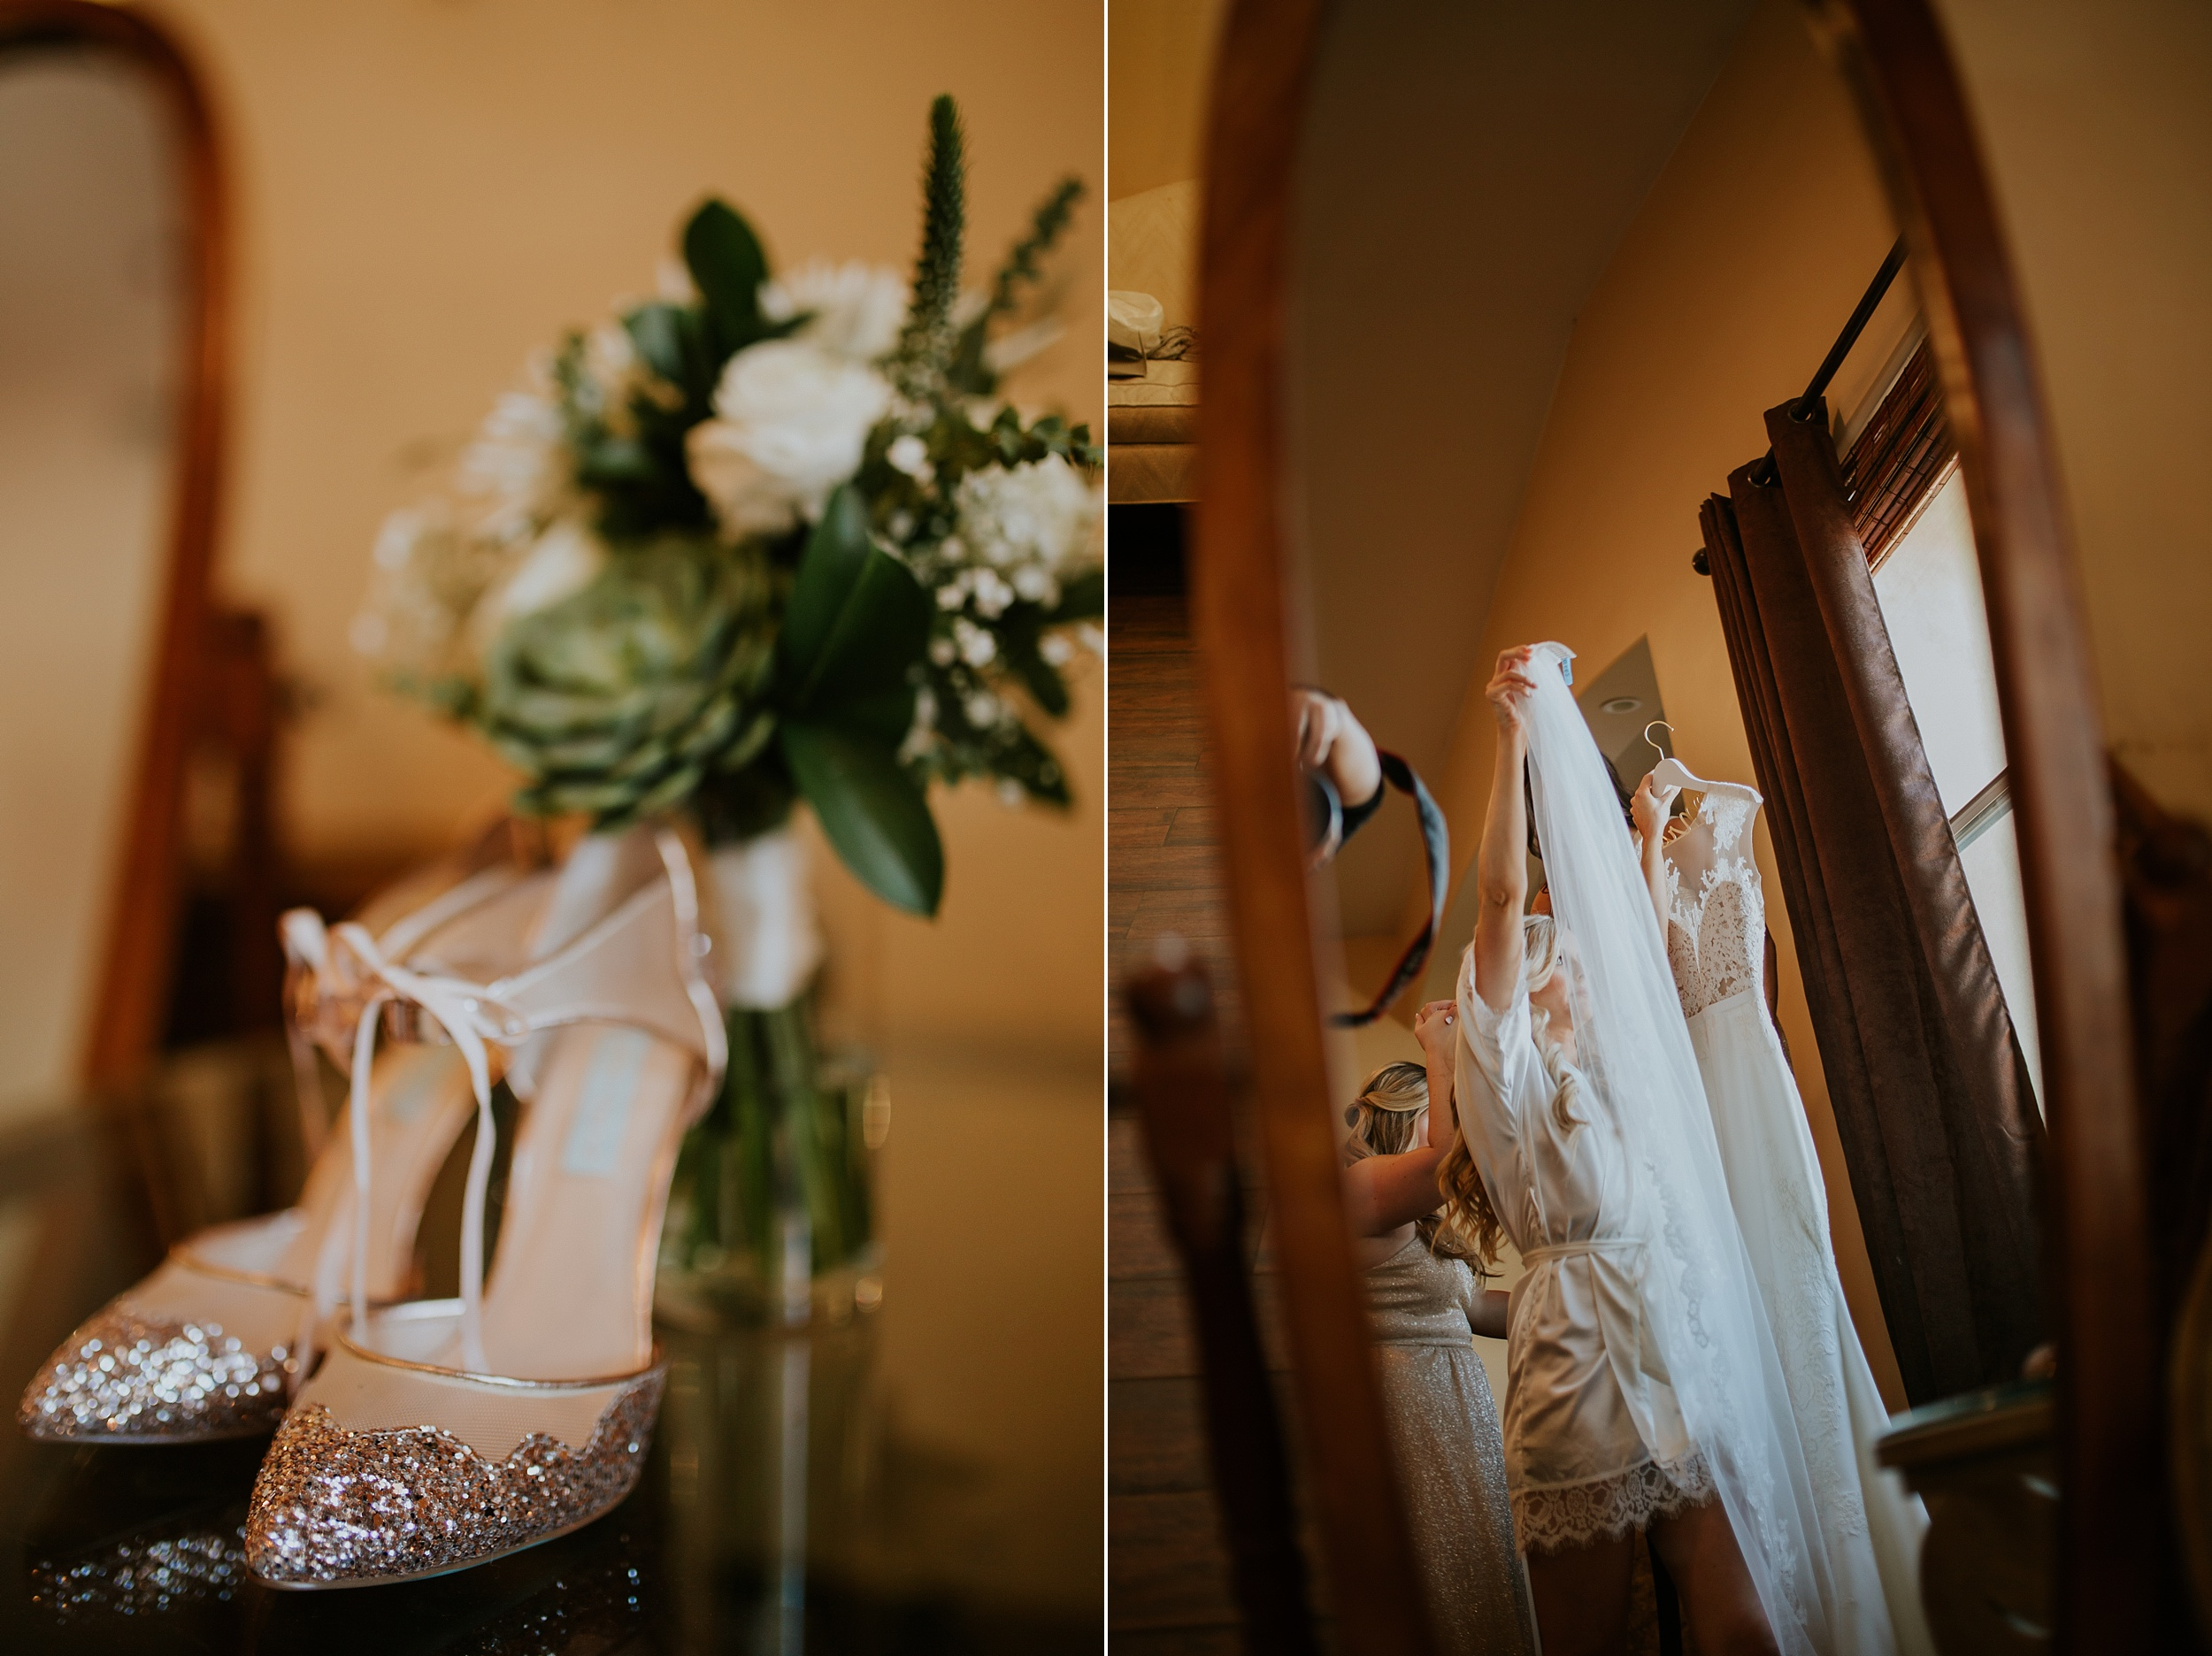 Meg+Bubba_Wedding_GettingReady_Arizona-292.jpg